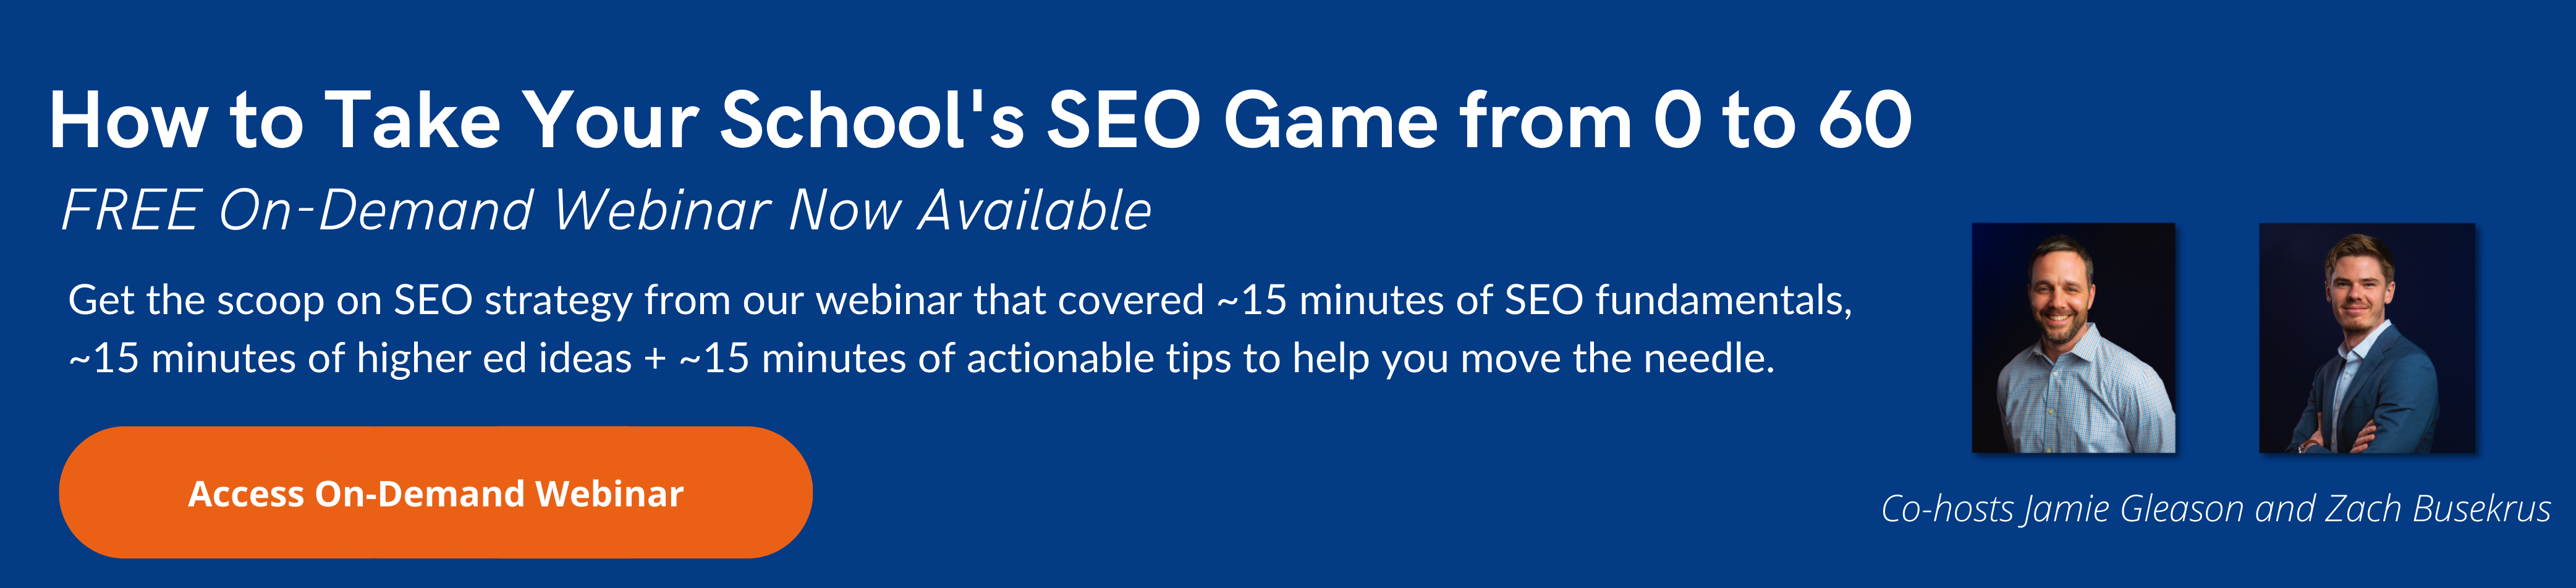 How to Take Your Schools SEO Game from 0 to 60